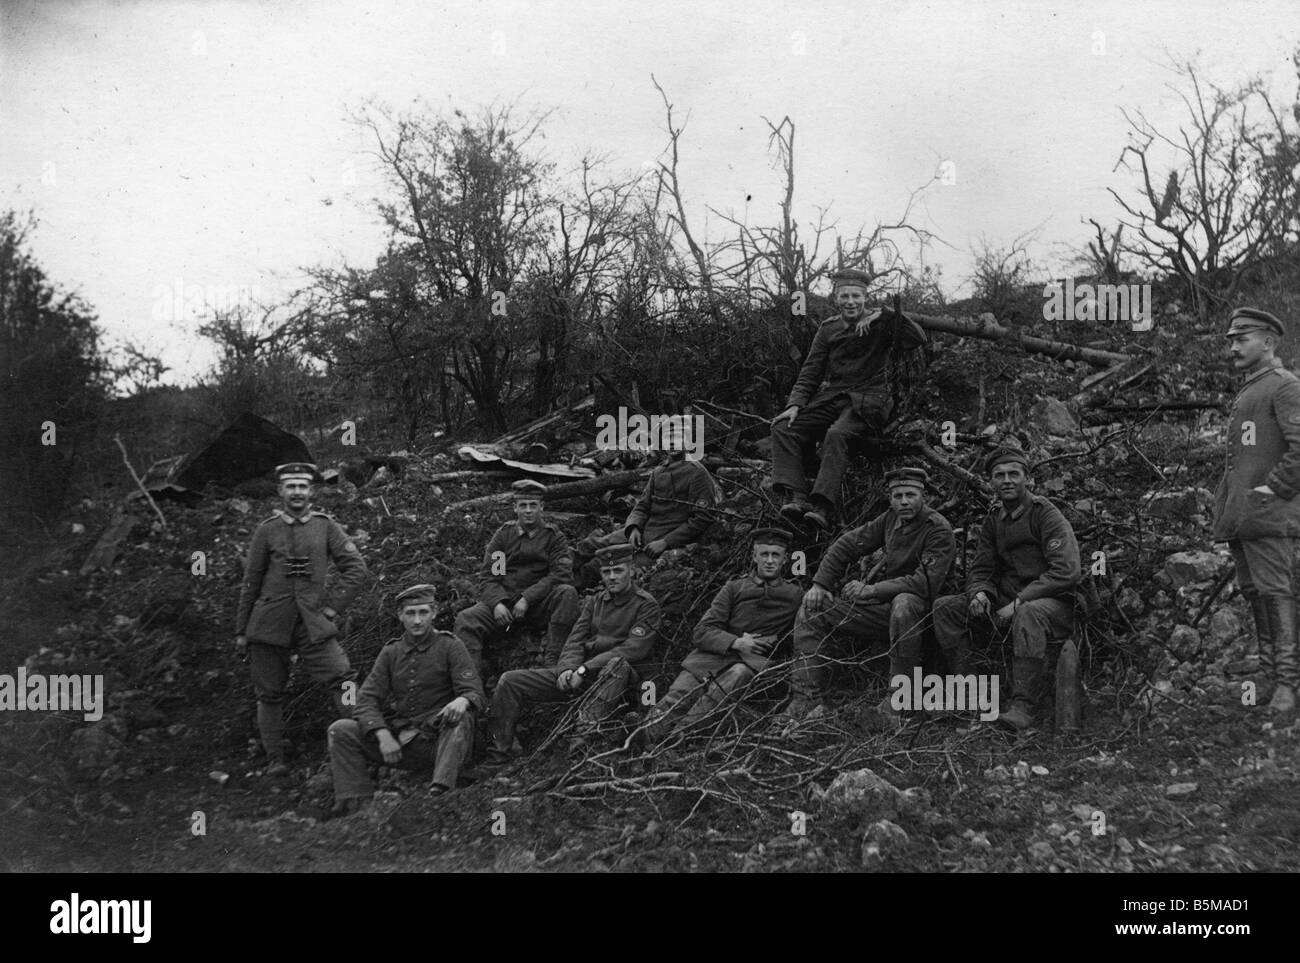 2 G55 W1 1917 17 Western Front 1917 German soldiers History World War One Western front Group photograph of German - Stock Image